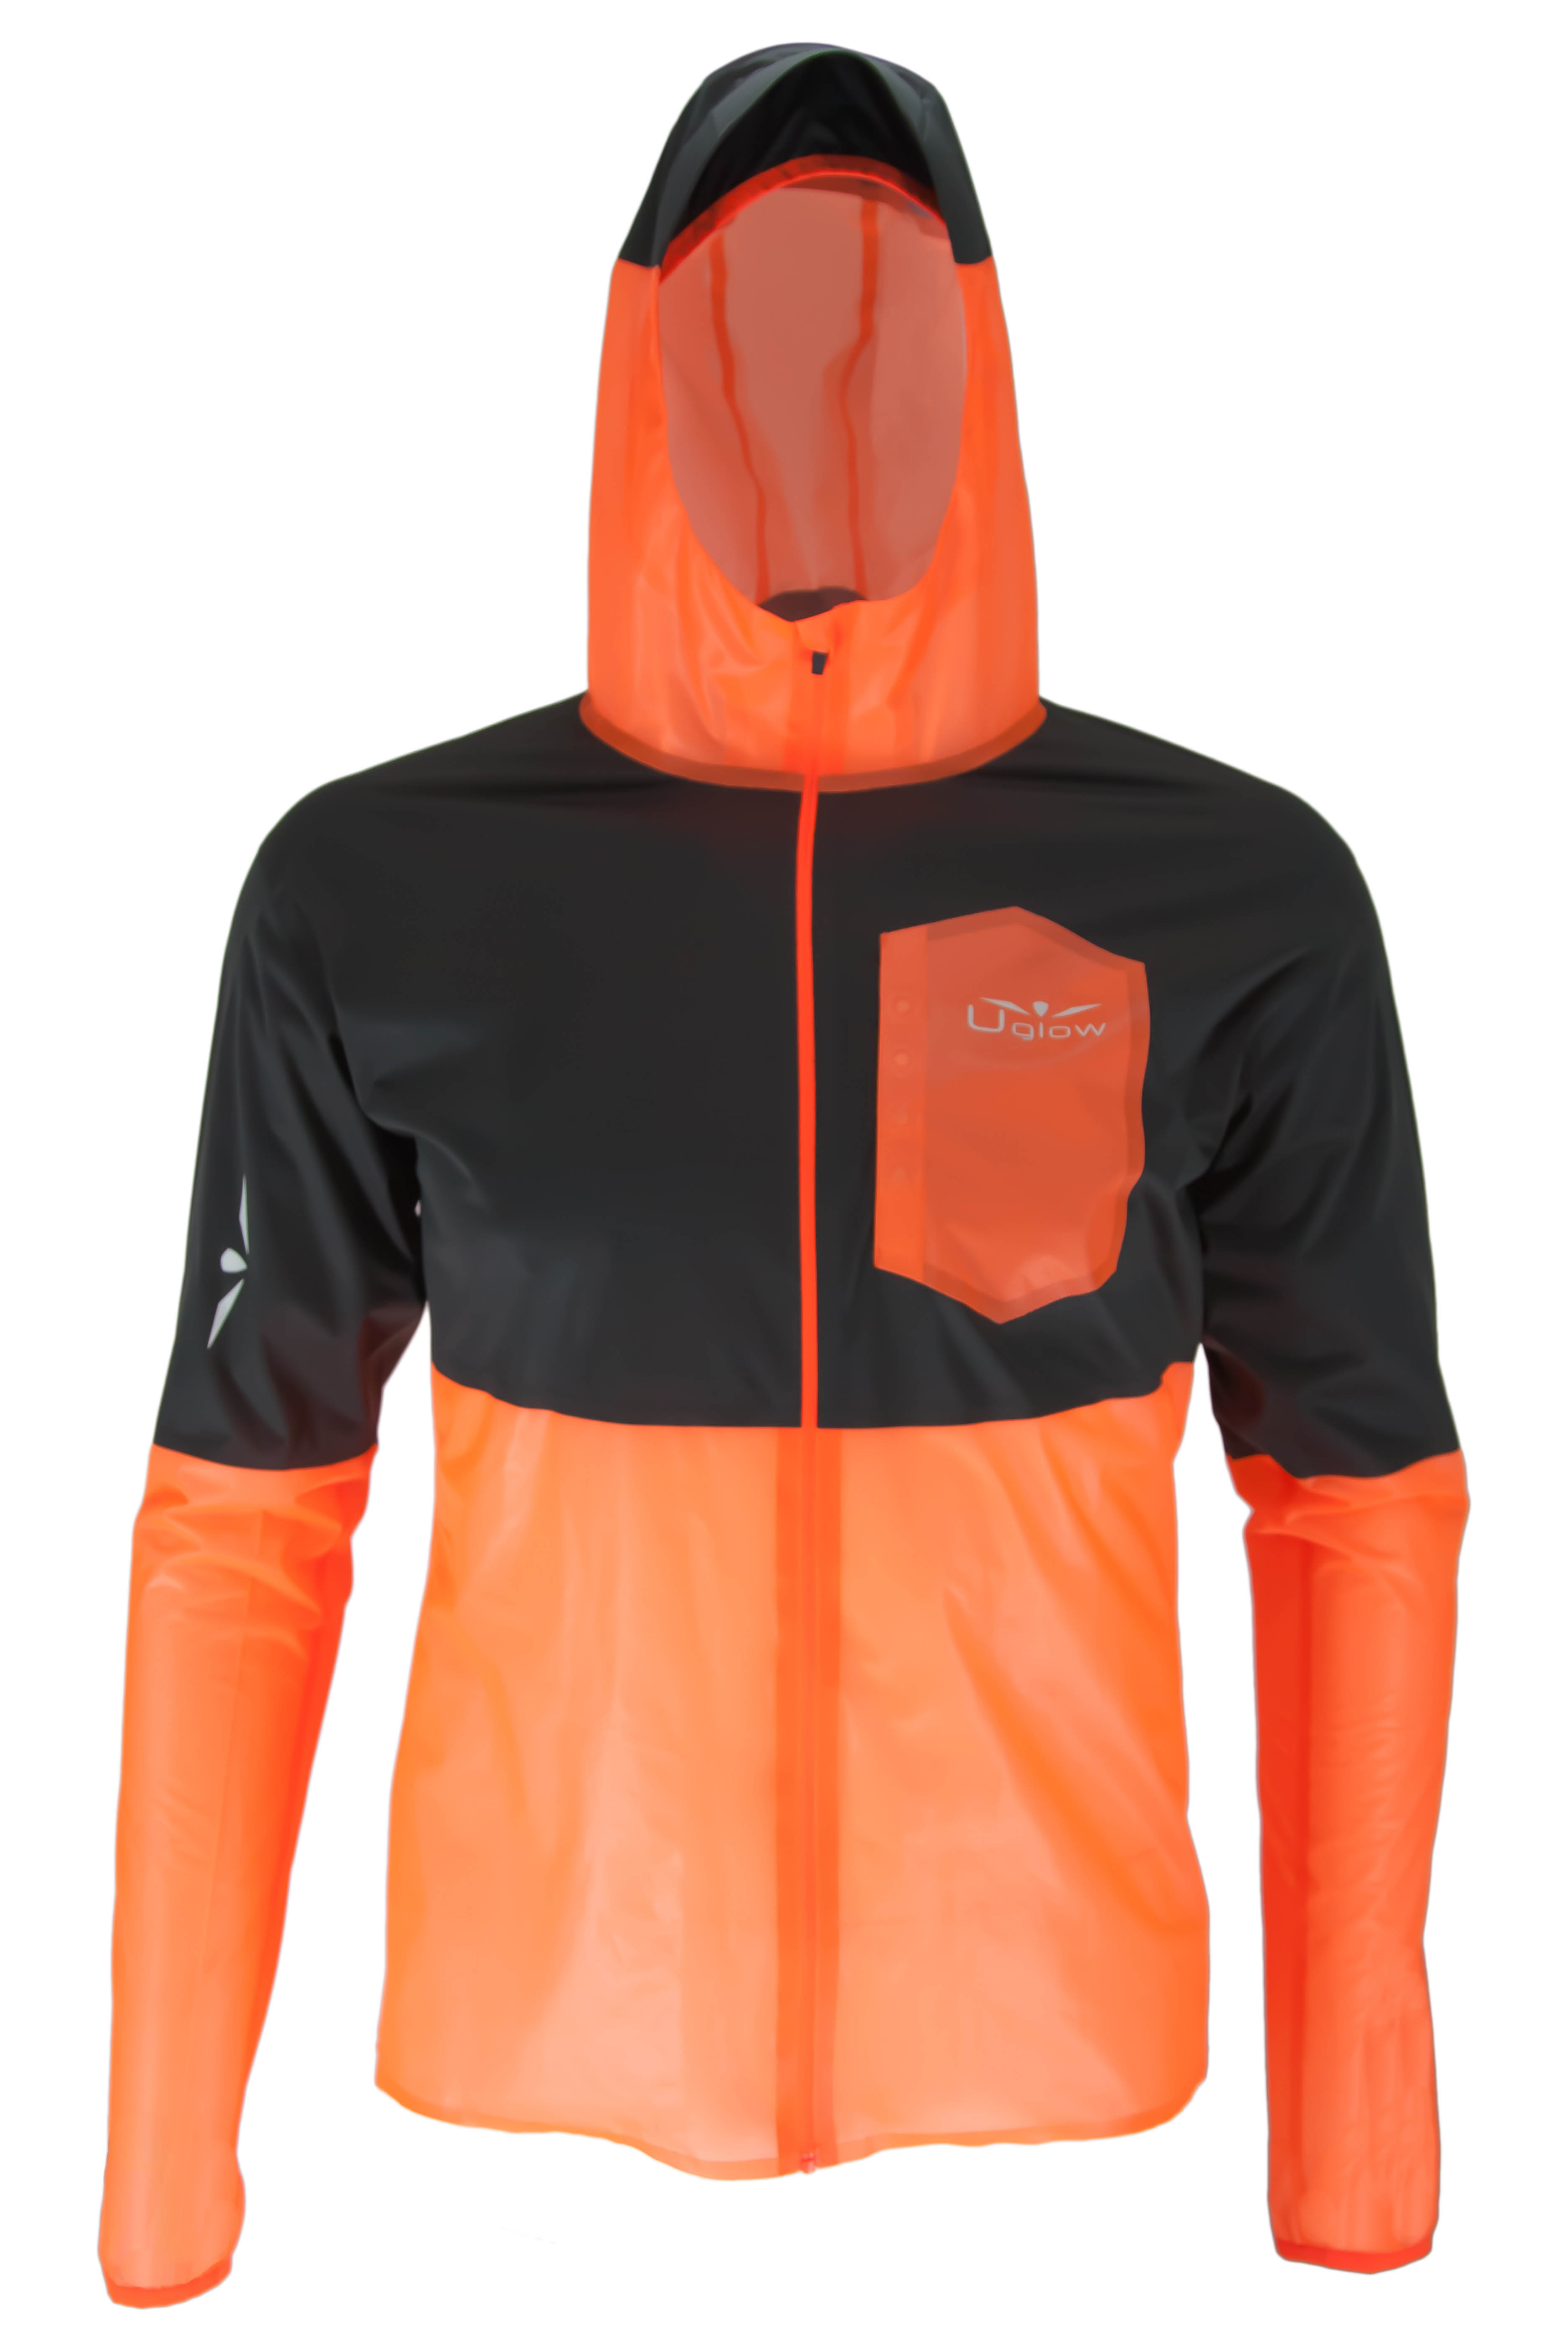 U-RAIN HYBRID FULL DG ORANGE2